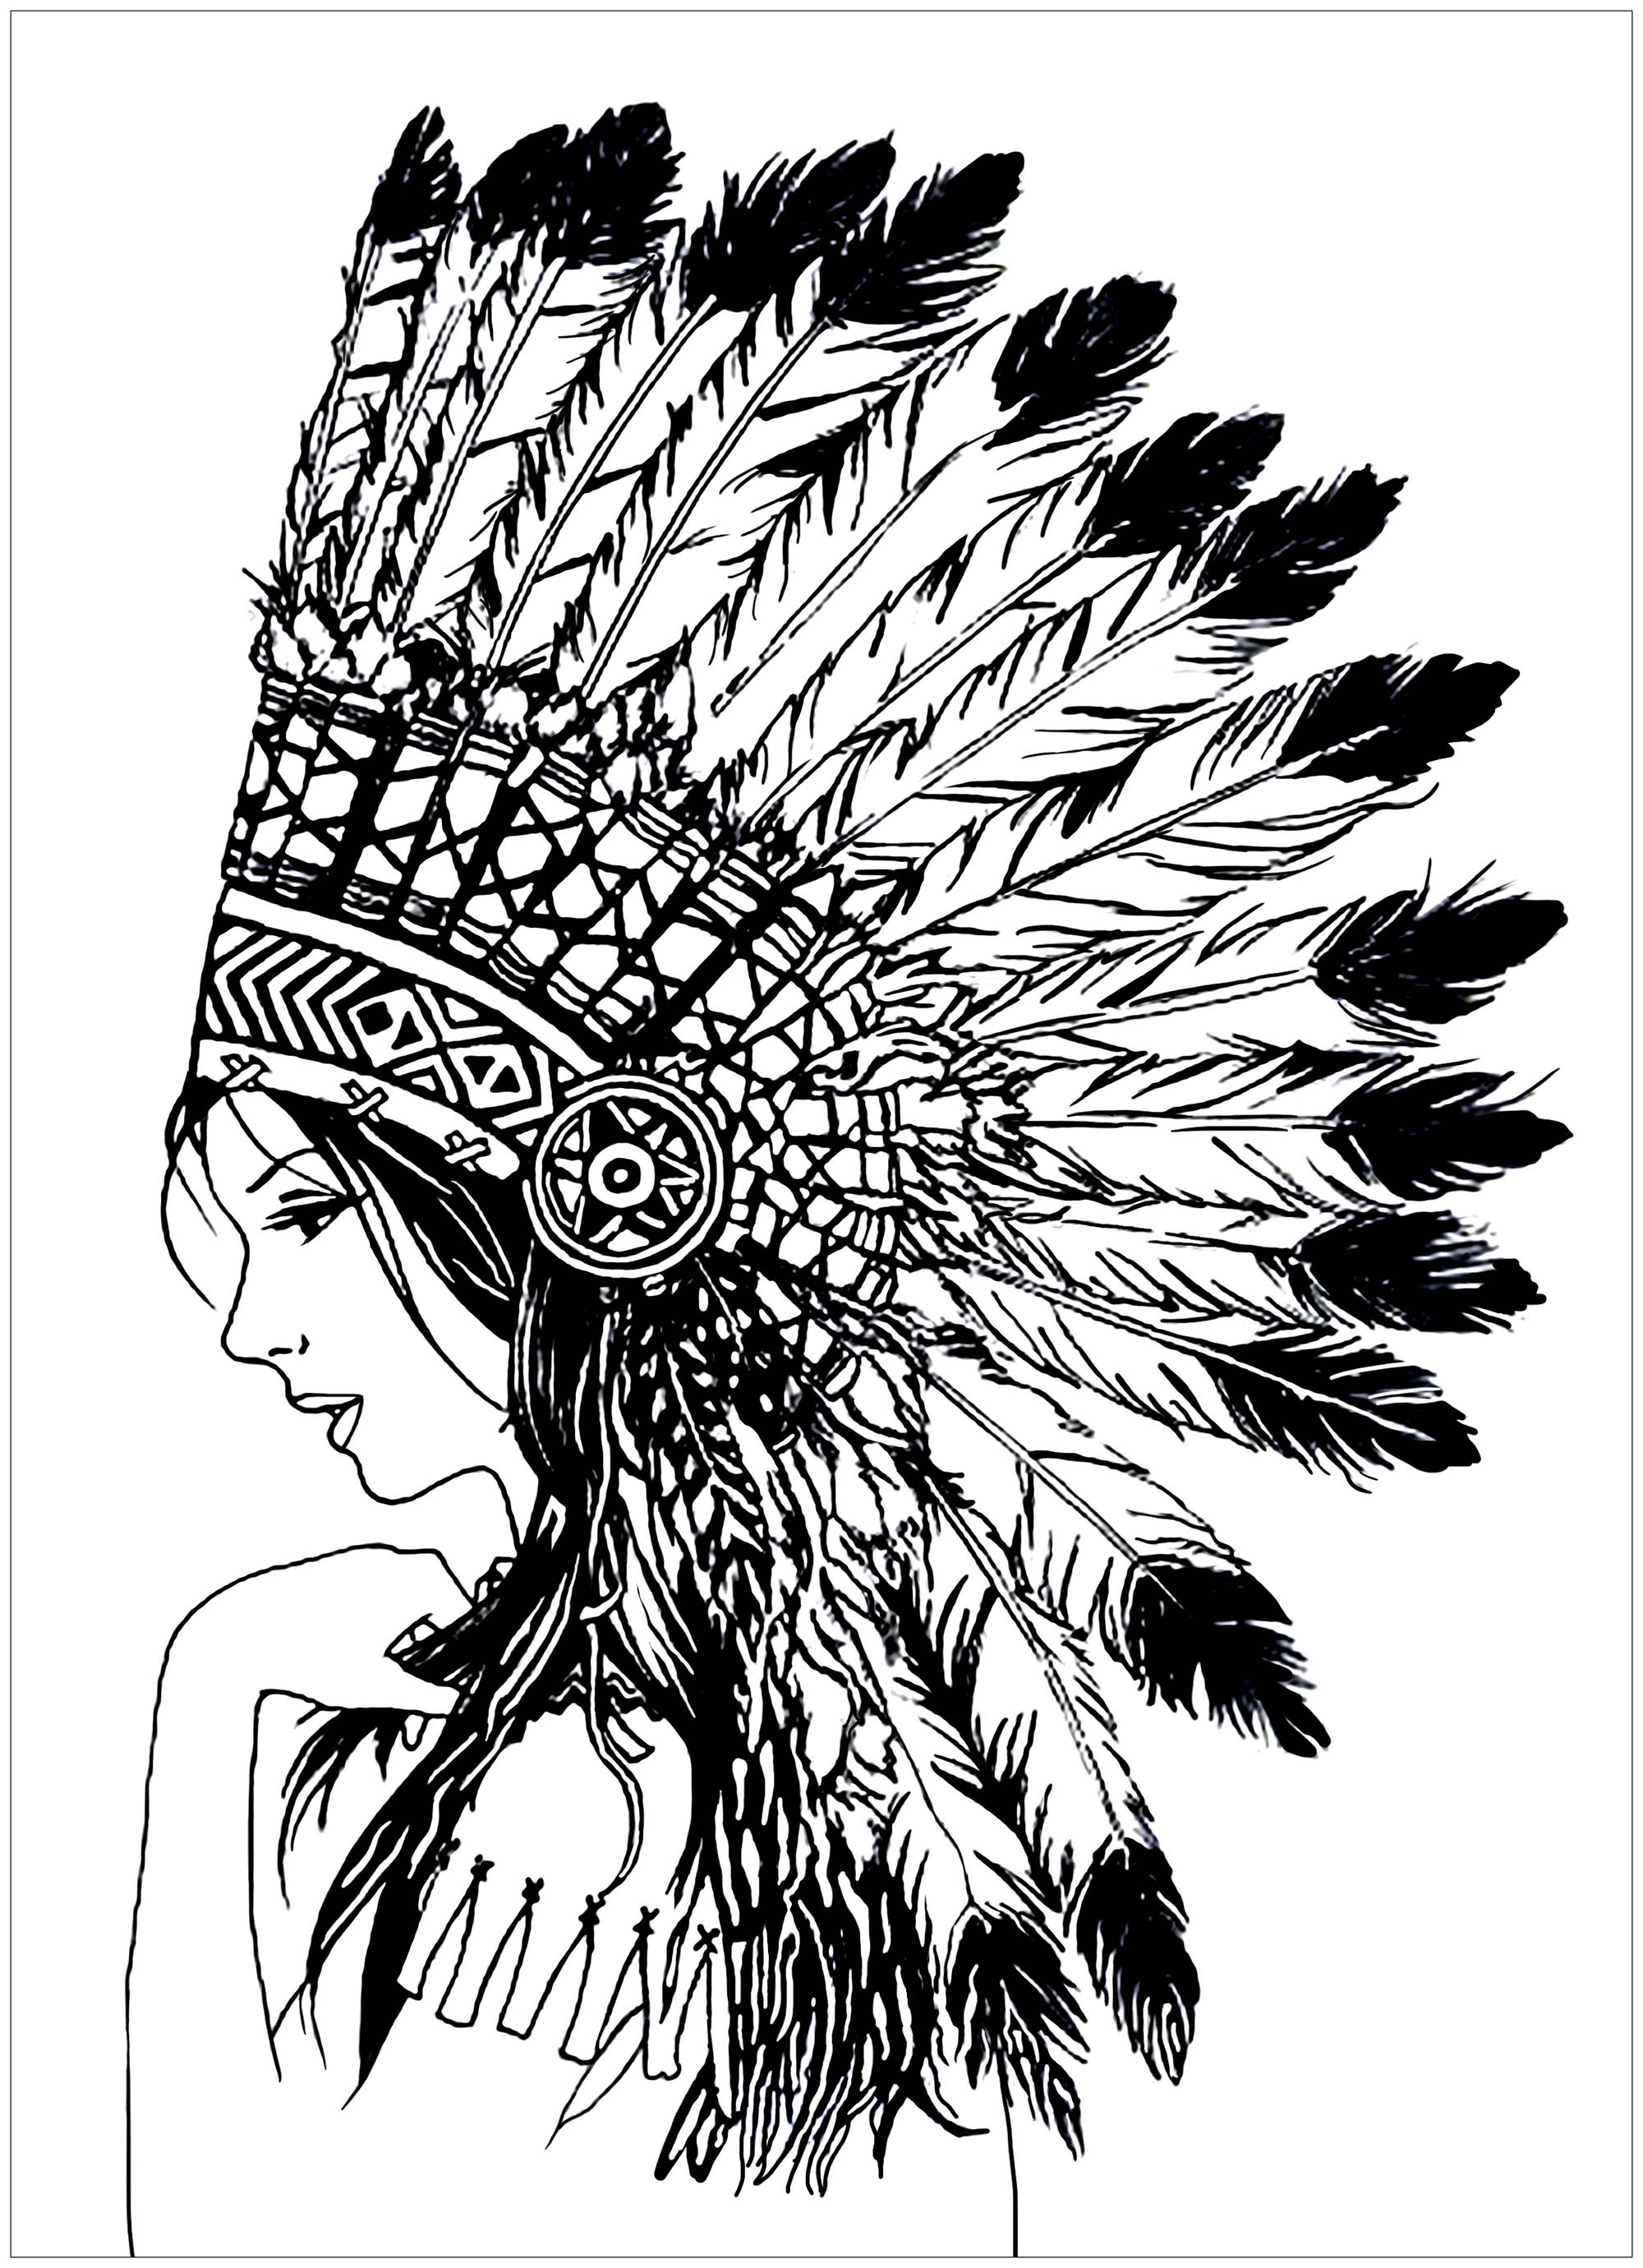 native american coloring pages for adults Beautiful indian woman   Native American Adult Coloring Pages native american coloring pages for adults